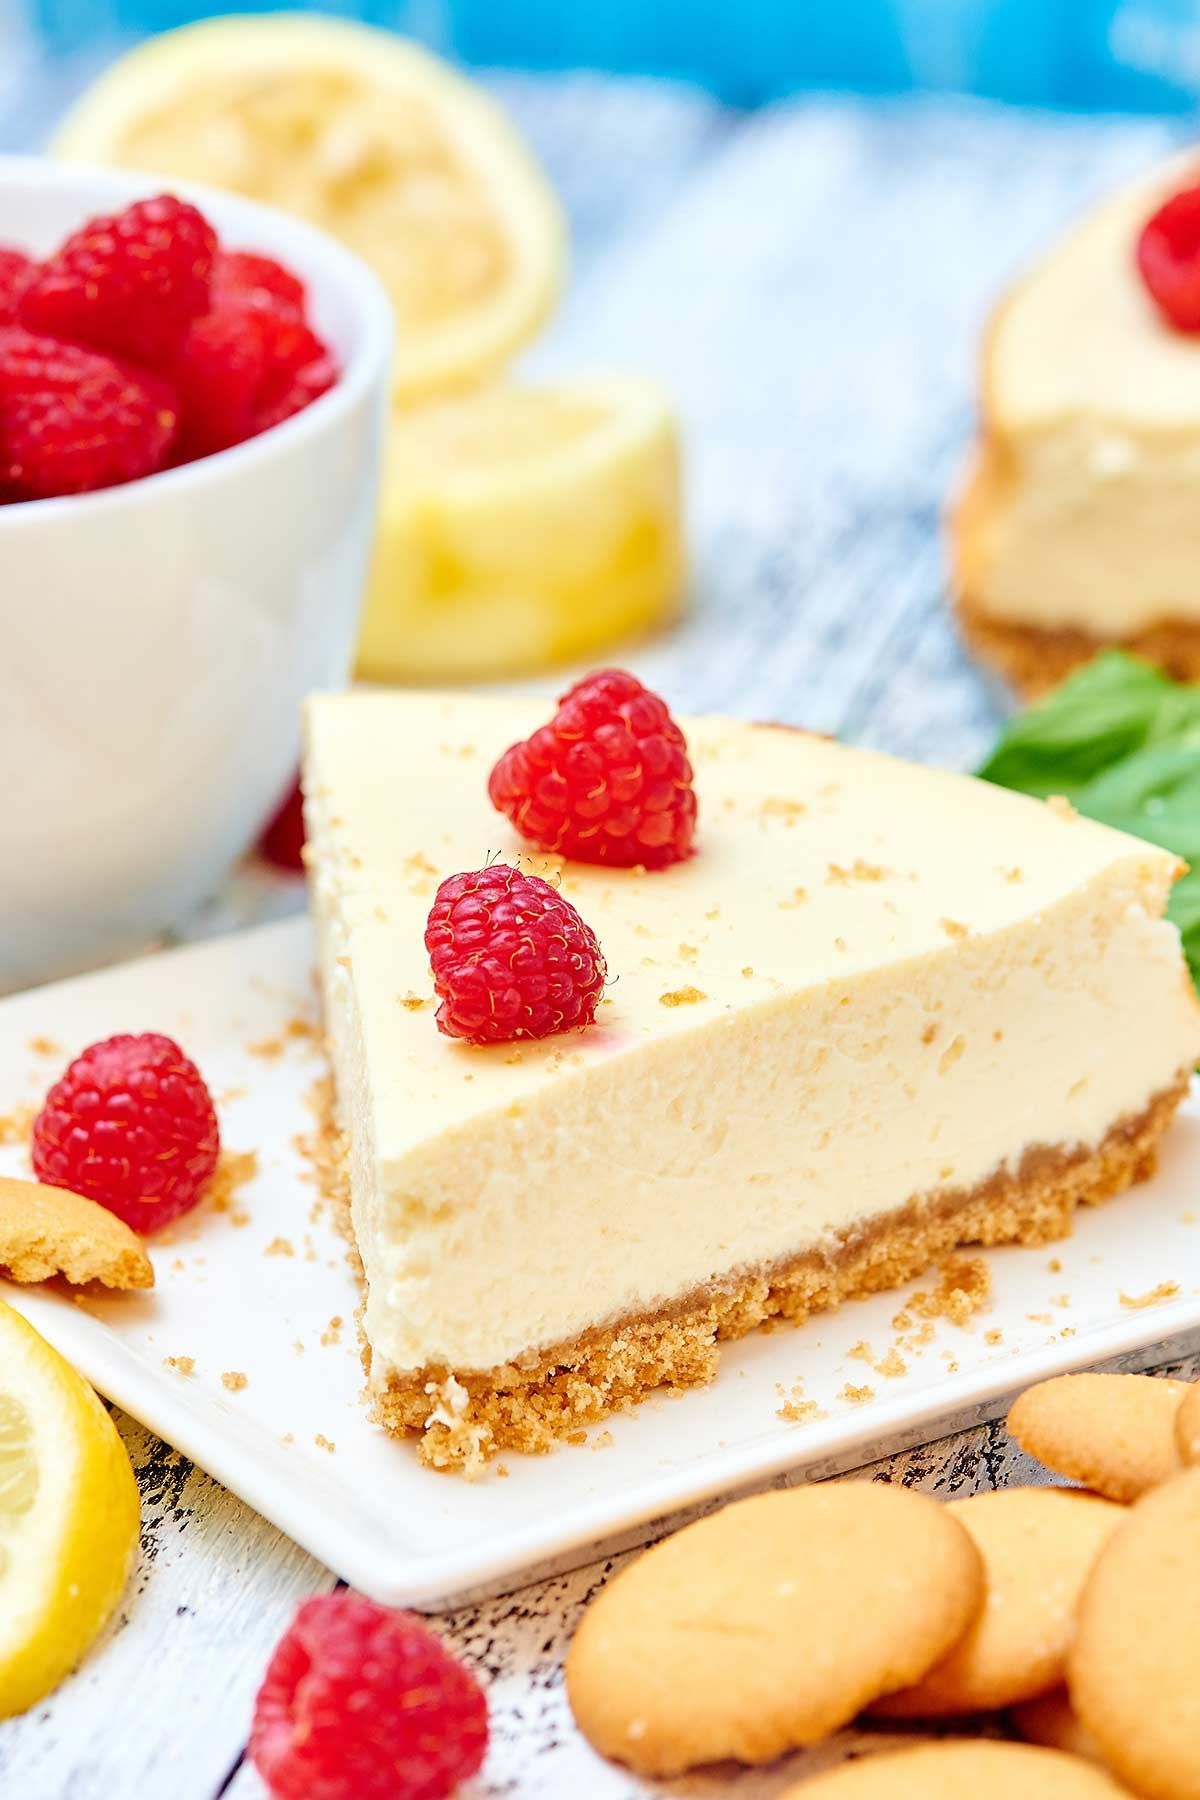 Light Greek Yogurt Cream Cheese Cheesecake Recipe 200 Calories Recipe Homemade Cheesecake Recipes Cheesecake Recipe Without Sour Cream Cheesecake Recipes